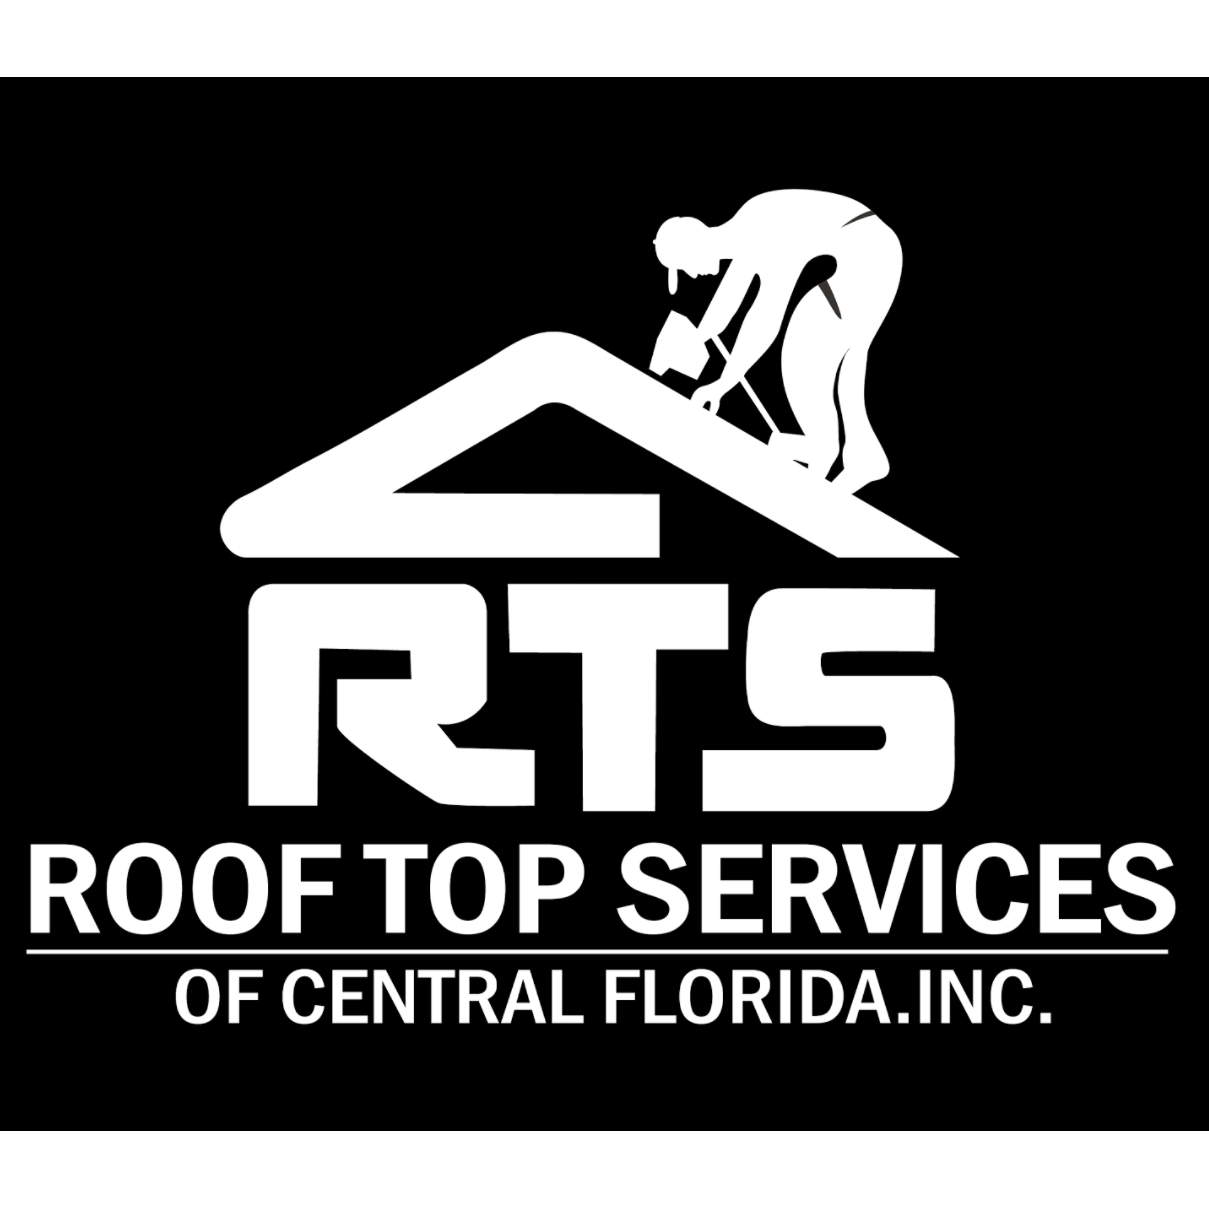 Roof Top Services of Central Florida, Inc